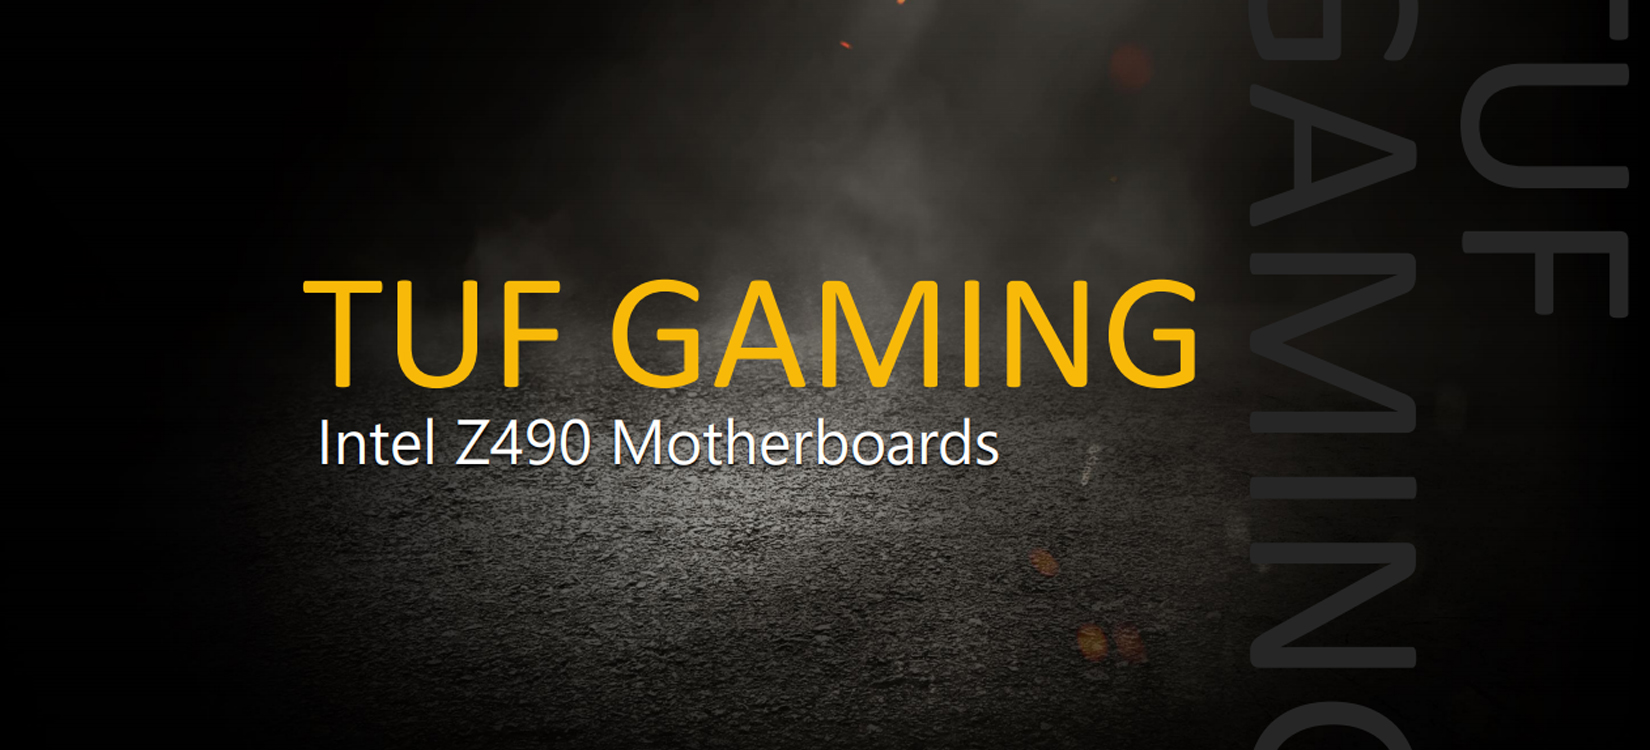 Mainboard ASUS TUF GAMING Z490-PLUS (Intel Z490, Socket 1200, ATX, 4 khe RAM DDR4)